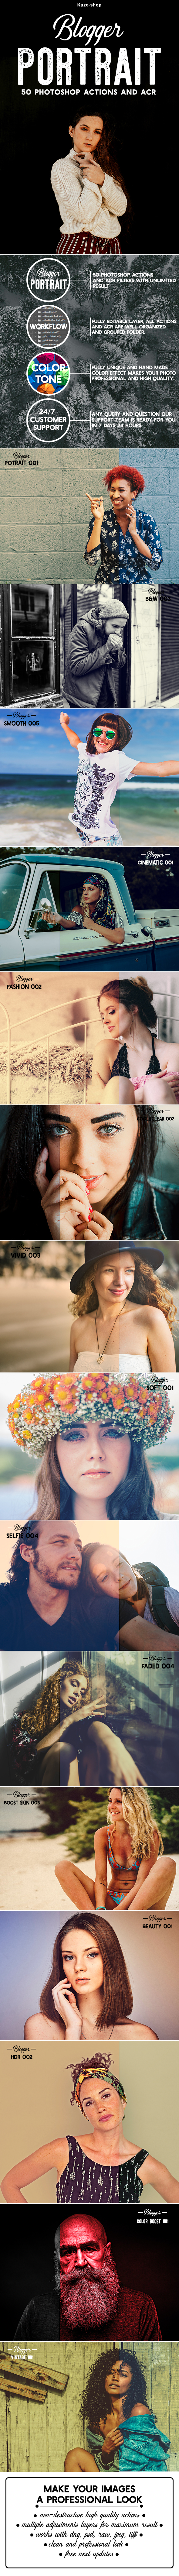 Blogger Portrait Collection - Photo Effects Actions